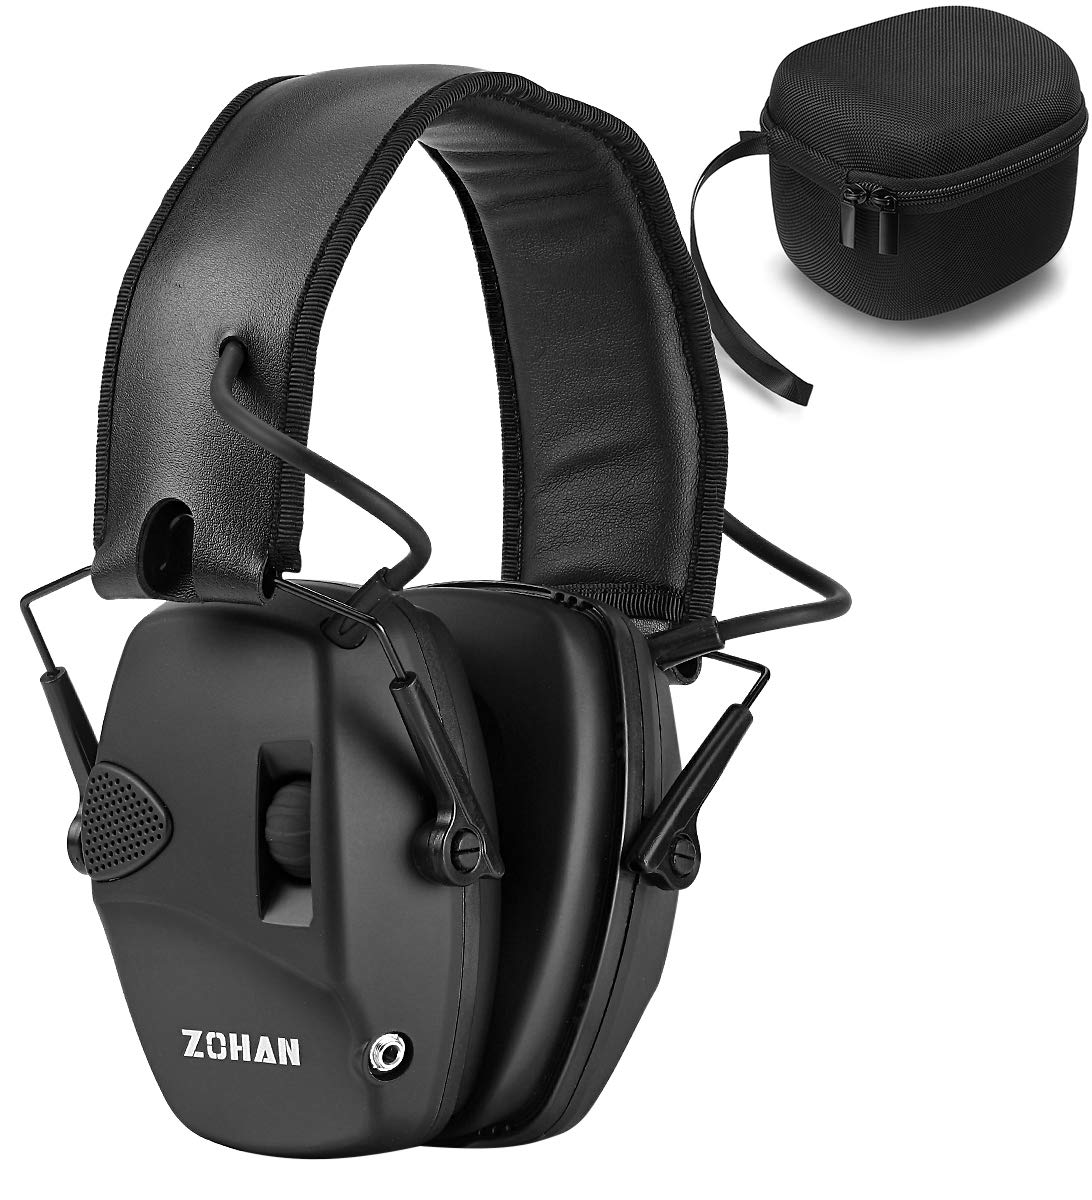 ZOHAN EM054 Electronic Shooting Earmuff, Professional Sound Amplification Noise Reduction Muff, Perfect for Shooting & Hunting - Black with Case by ZOHAN